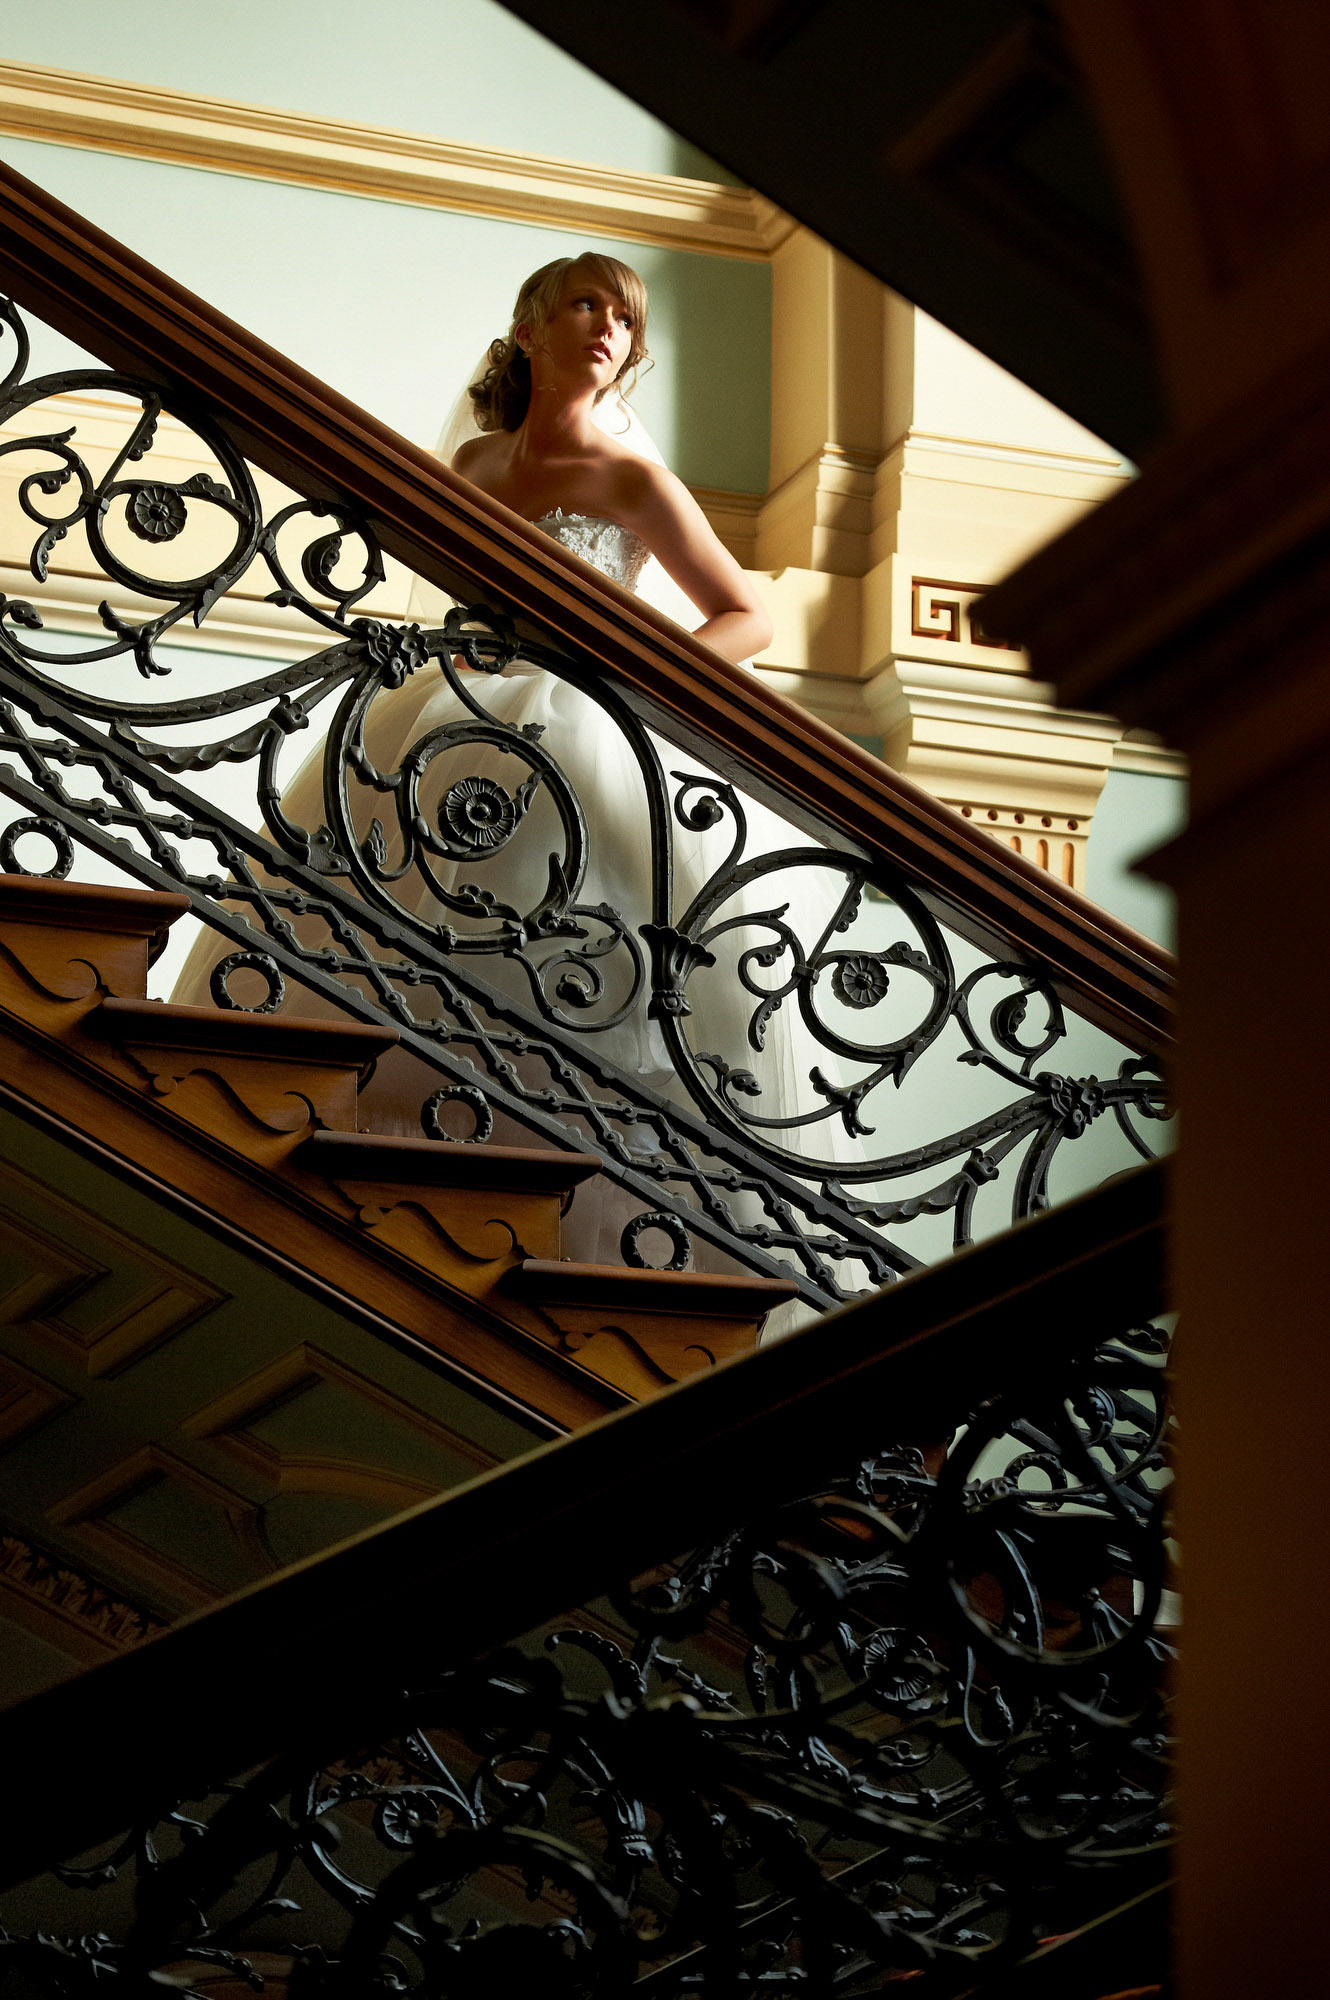 Bride walks up elegant wrought iron stairway photo by Jerry Ghionis